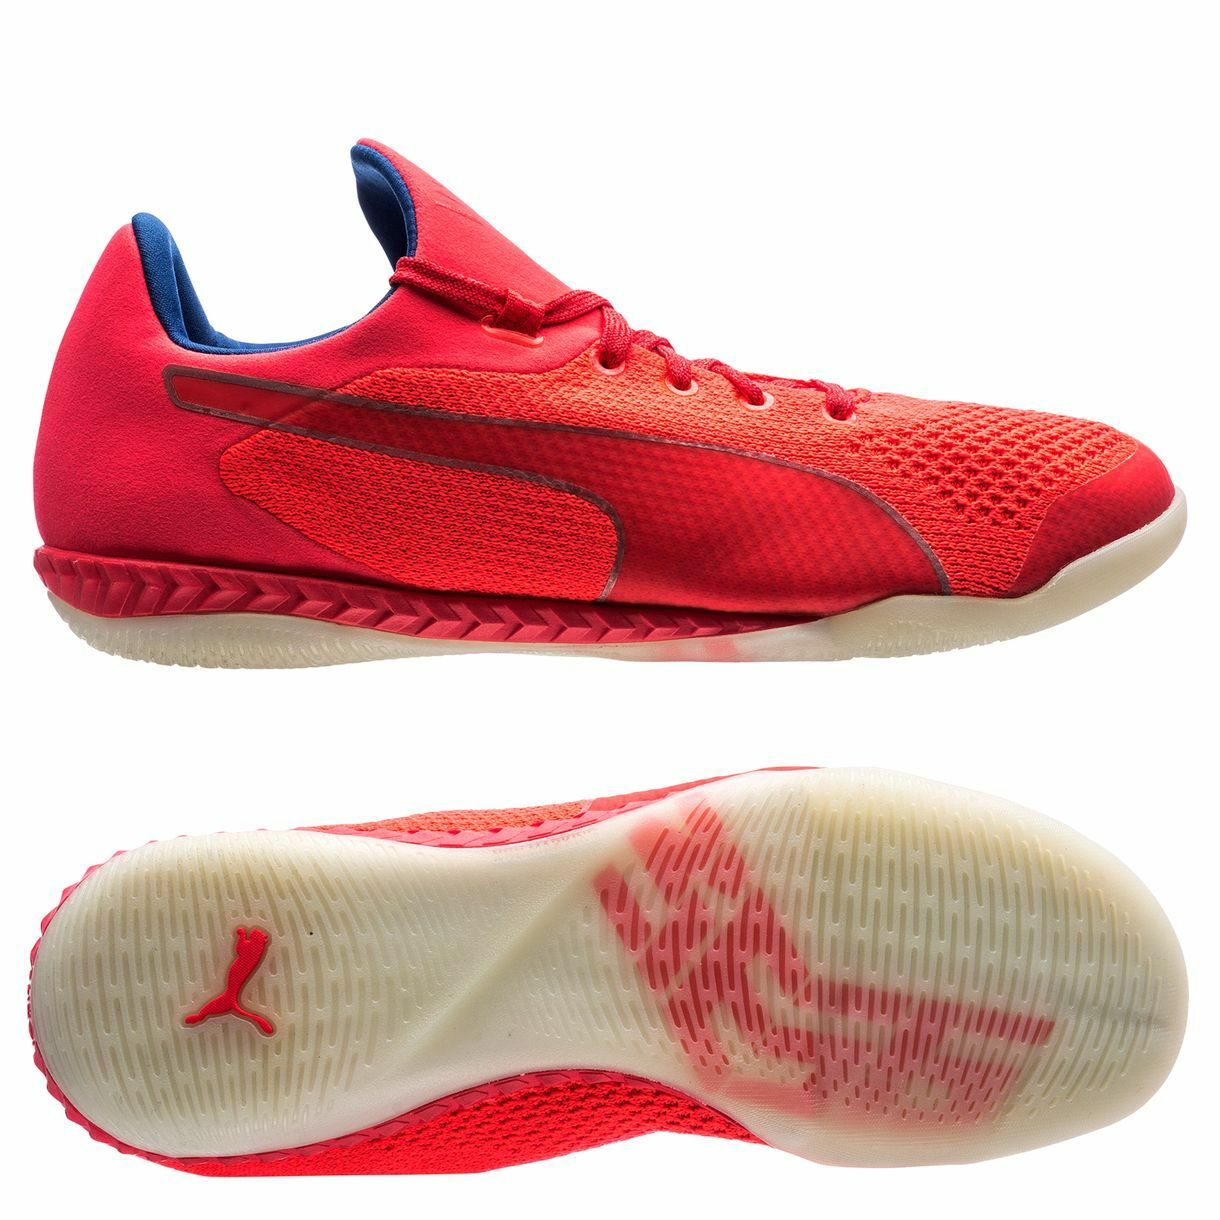 Puma 365 EvoKnit Ignite 2017 IT Indoor   Training Soccer shoes  Coral Red   Pink